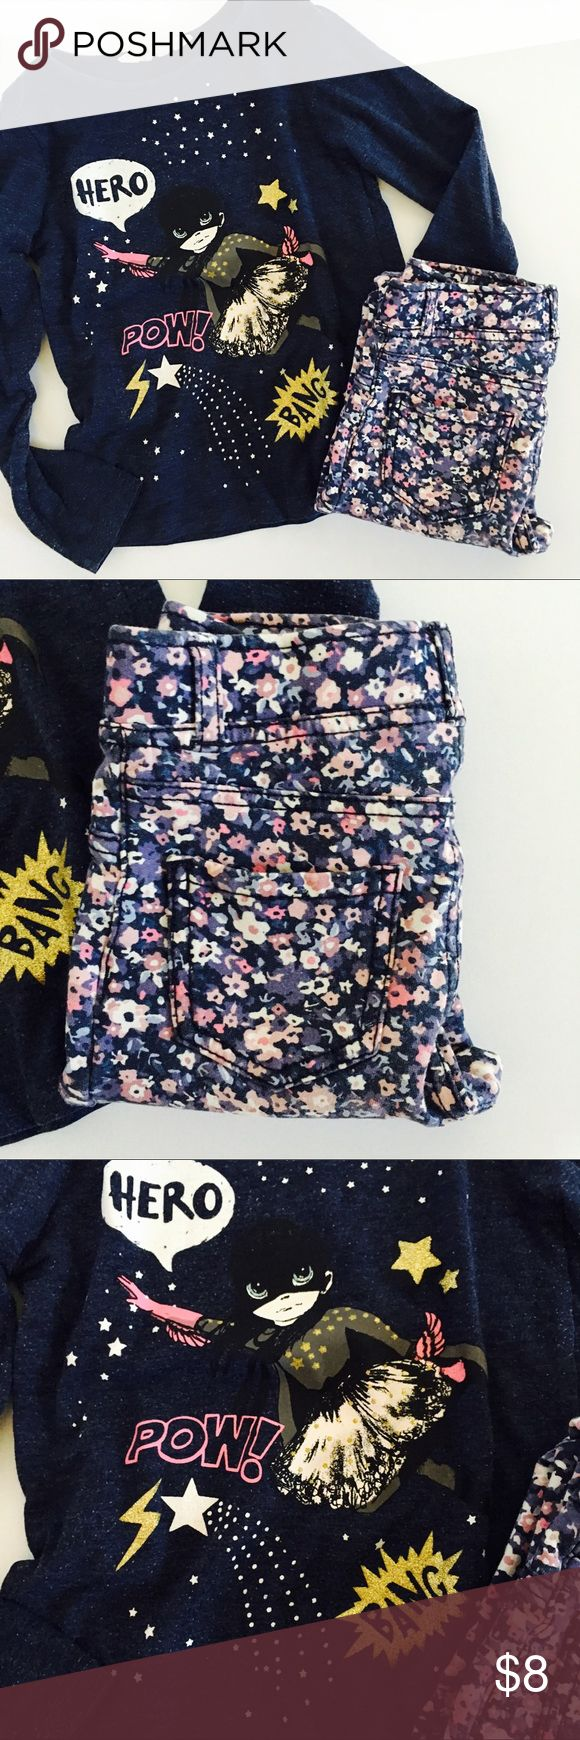 H&M Floral Tregging & Graphic Tee Cute girl superhero tee size 2/4Y. Floral treggings pull on style size 3/4Y. Good used condition. H&M Matching Sets